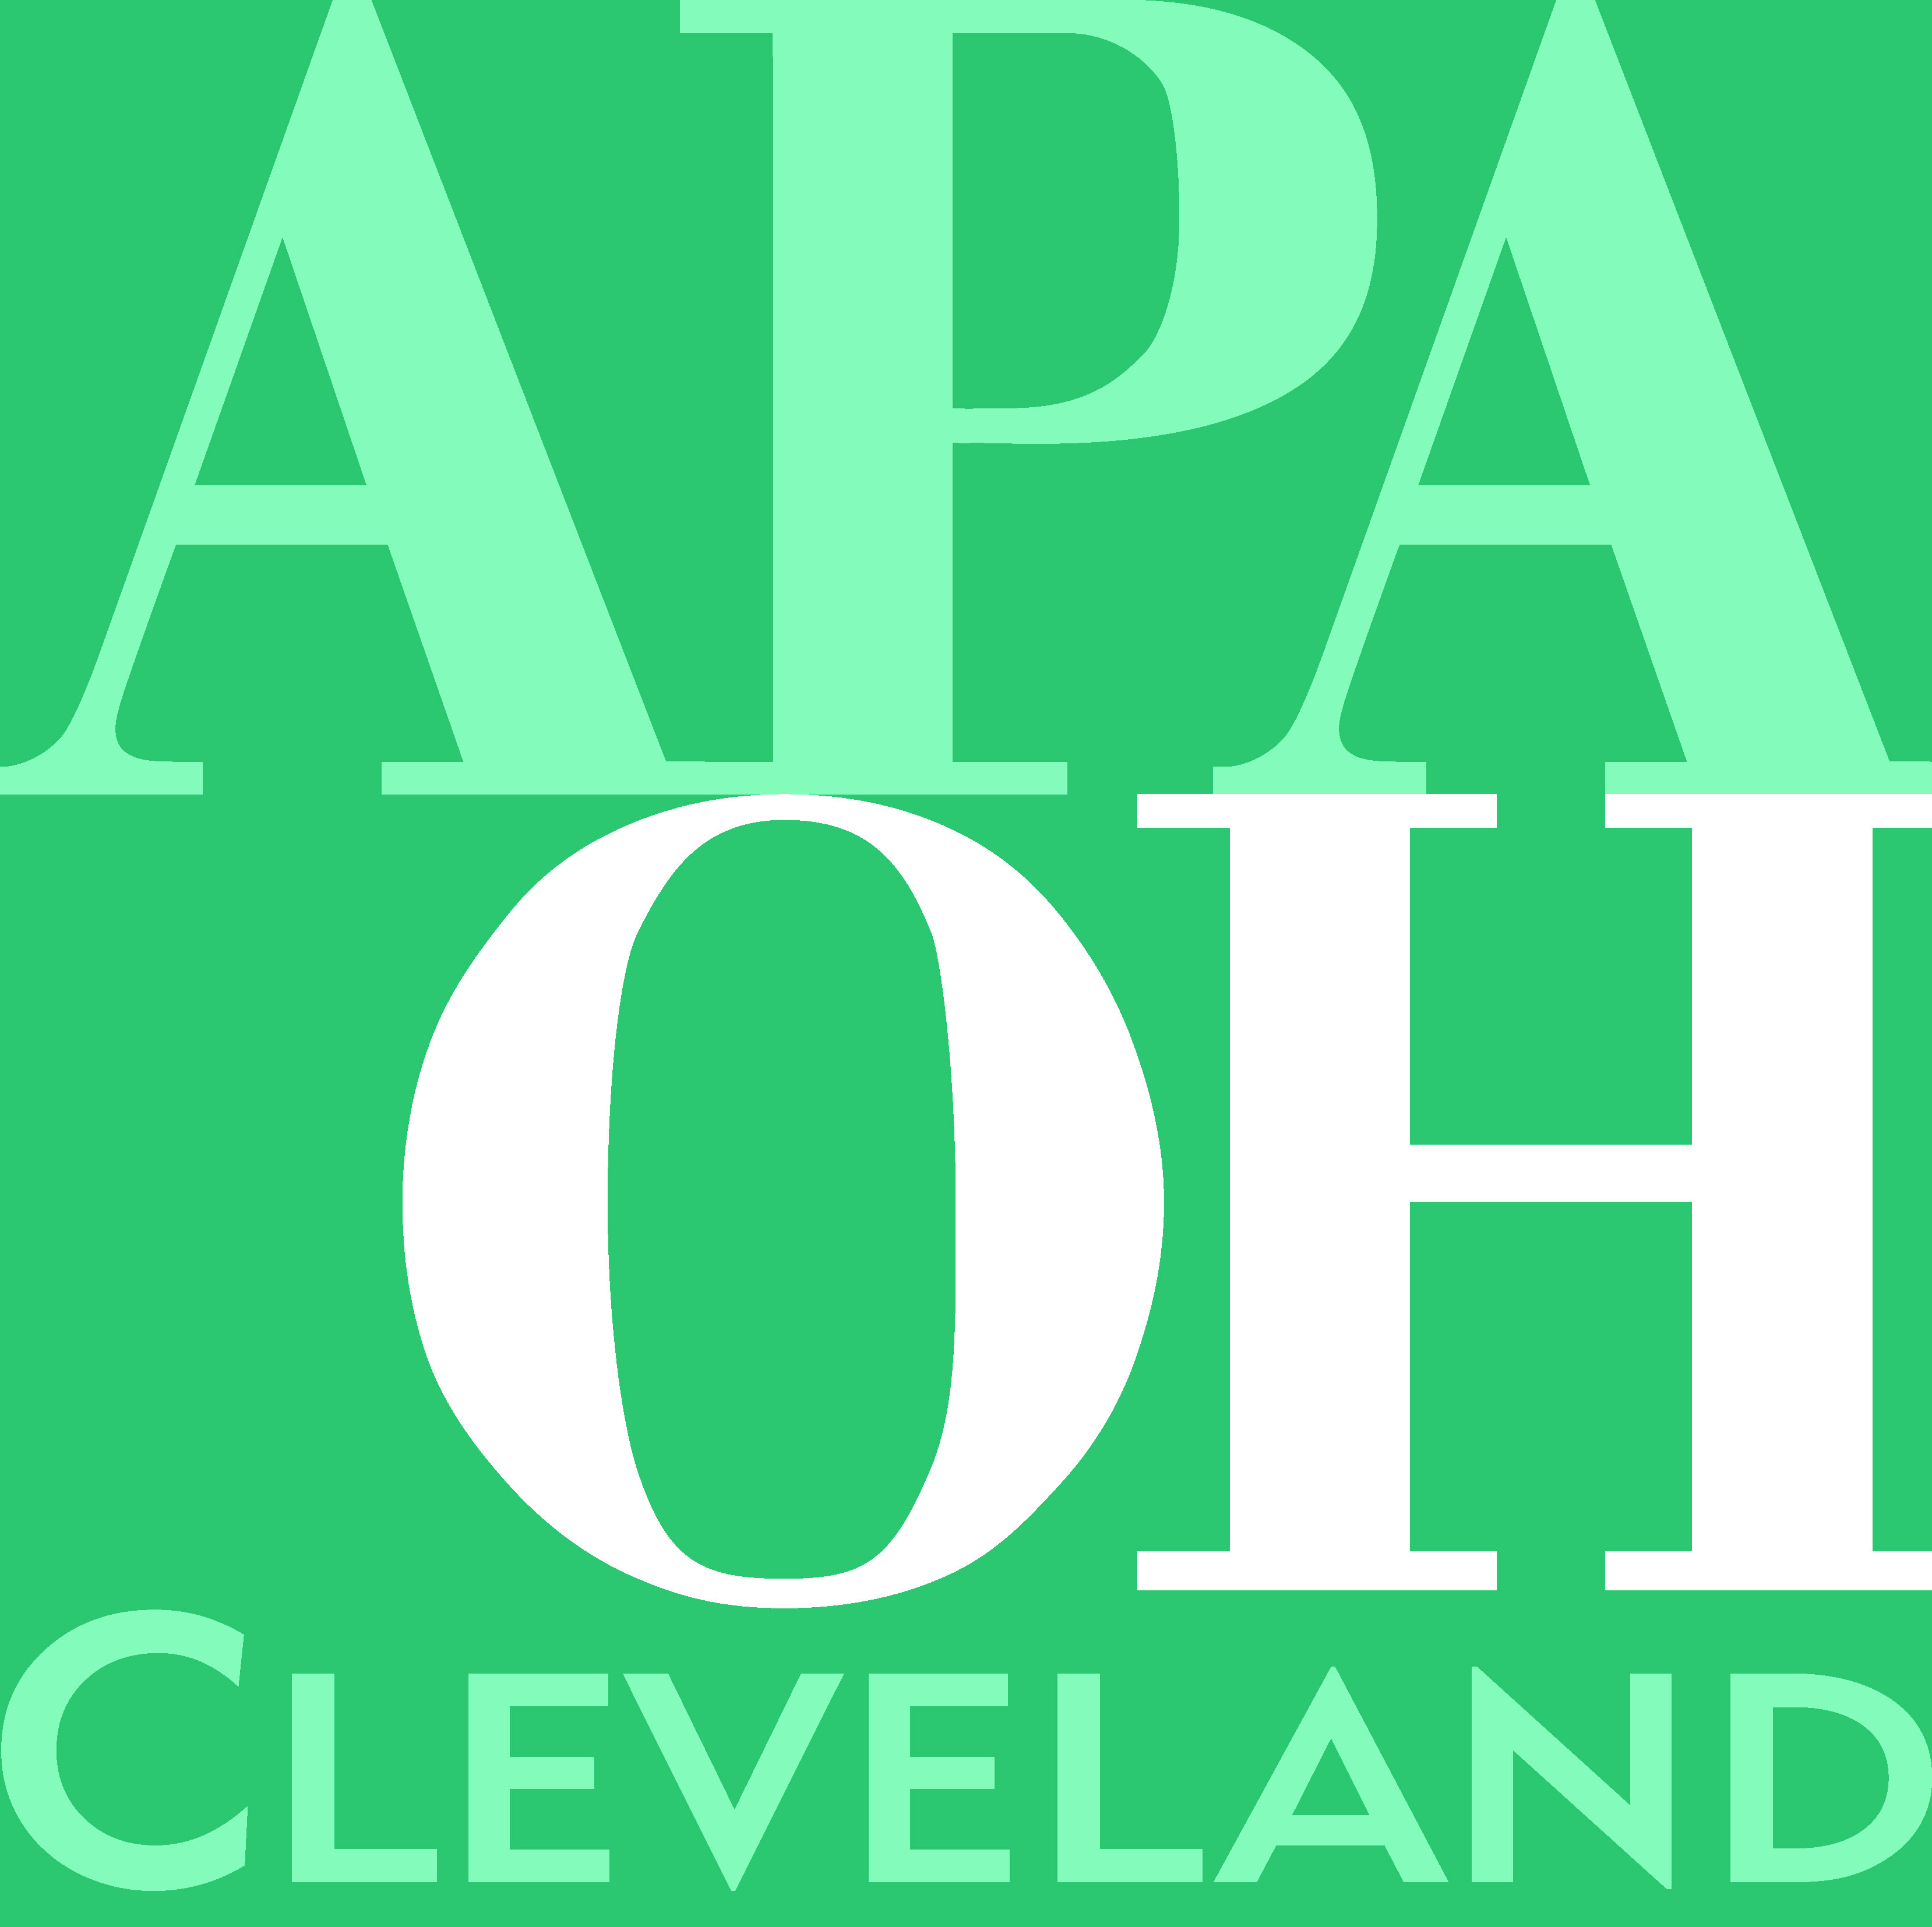 Statewide Opportunities For Linking Planning And: APA Ohio Cleveland Section